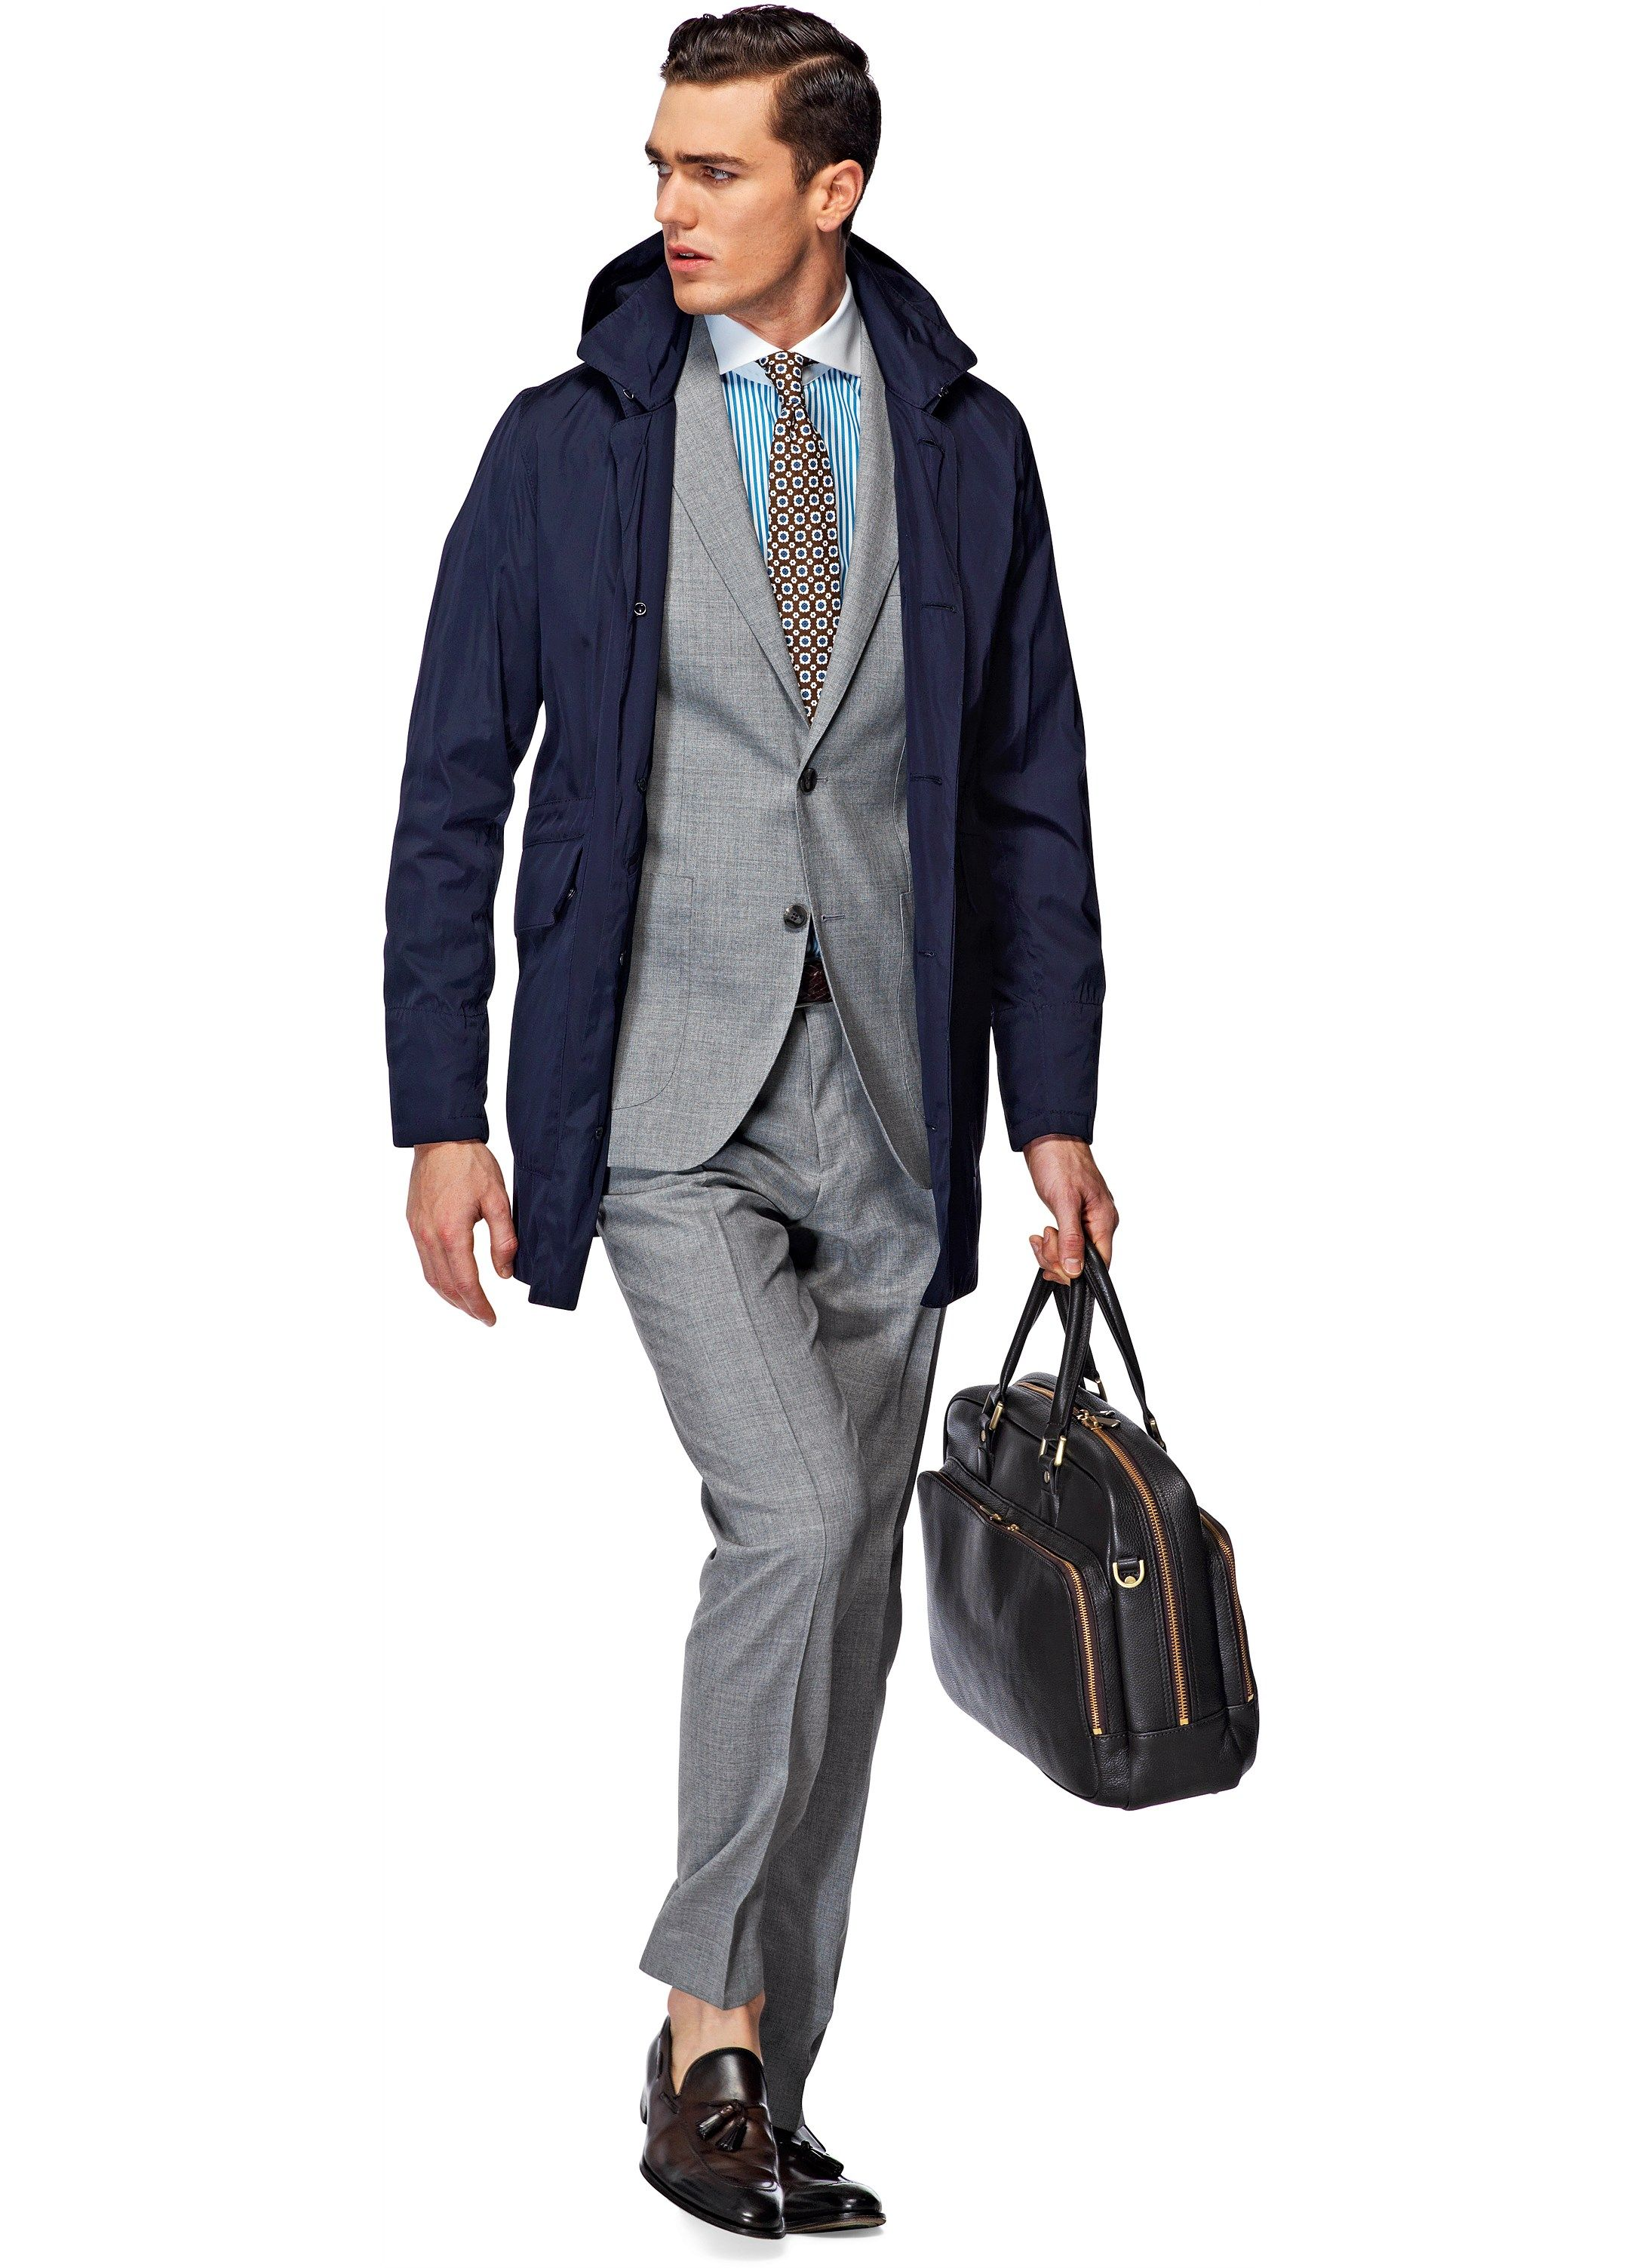 Blue Suitsupply Pinterest J269 And First Foremost Raincoat UdxqSwd6T